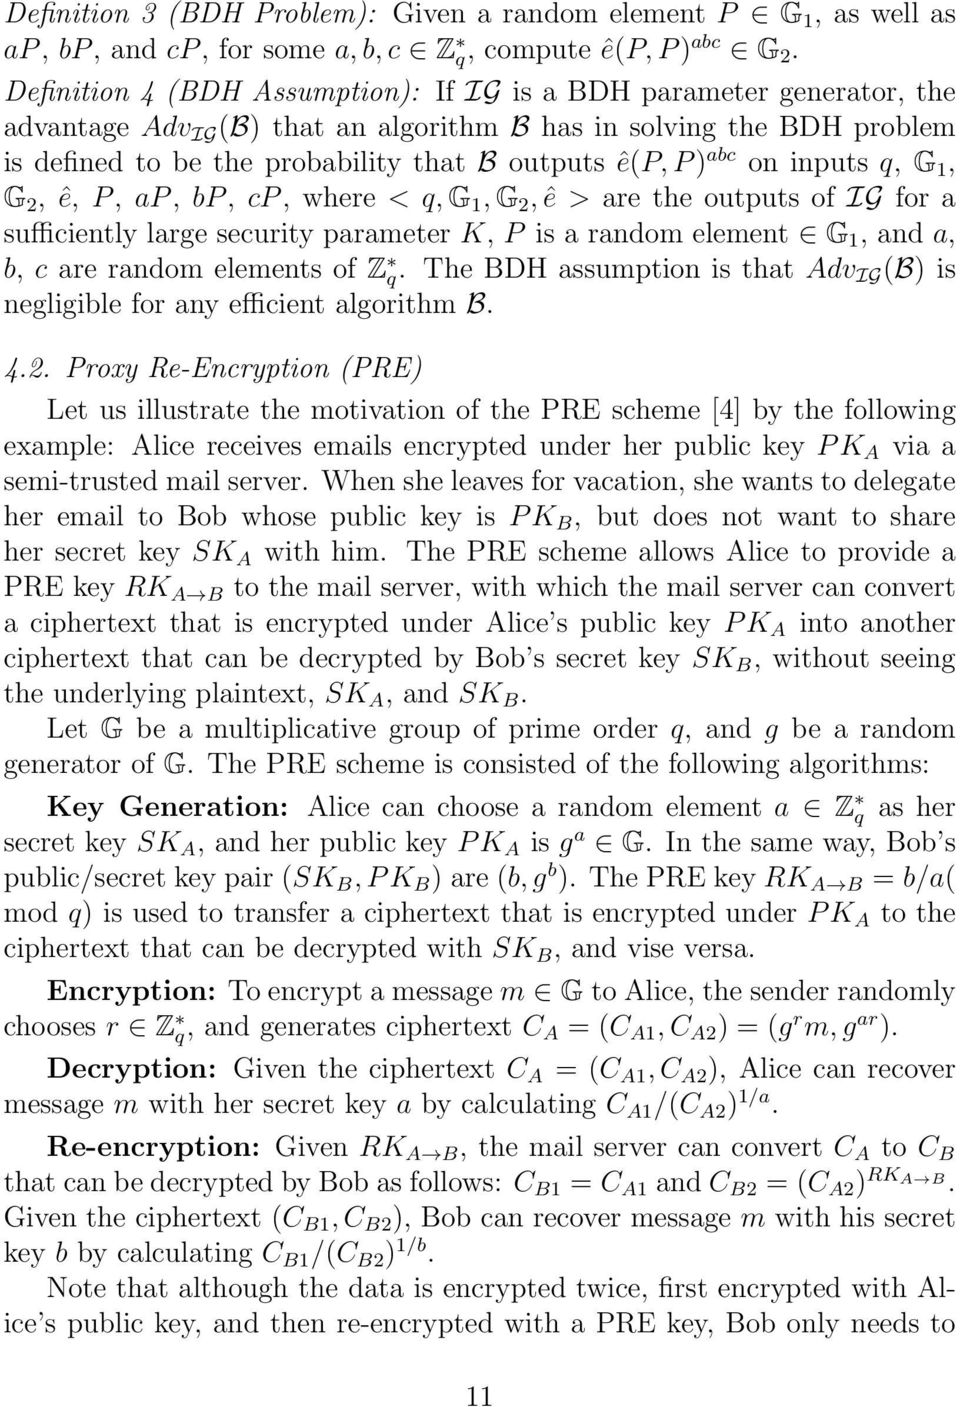 abc on inputs q, G 1, G 2, ê, P, ap, bp, cp, where < q, G 1, G 2, ê > are the outputs of IG for a sufficiently large security parameter K, P is a random element G 1, and a, b, c are random elements